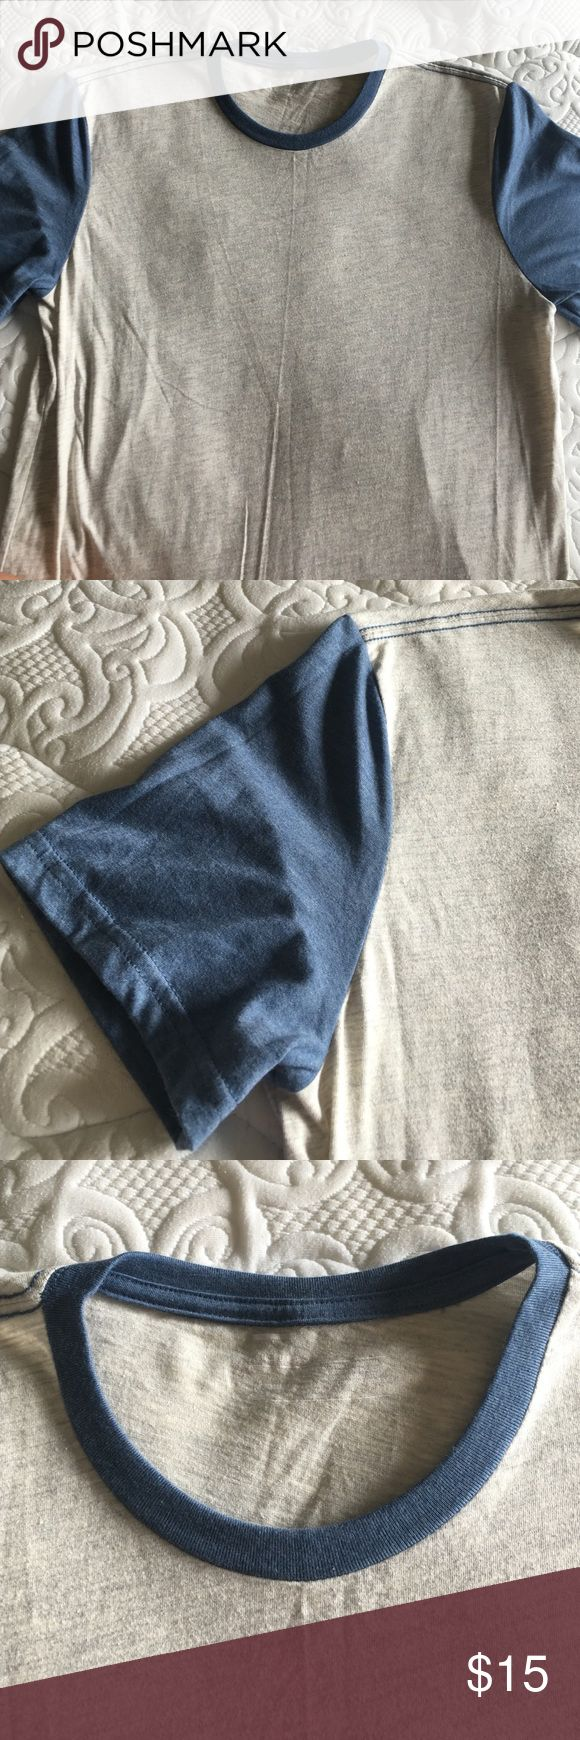 Public Opinion by Nordstrom Baseball Tee Short sleeve tee in contrasting tones. Body is off-white with grey heather accents and sleeves and neckline are blue. Cotton/polyester blend. Make an offer, price is negotiable! Nordstrom Shirts Tees - Short Sleeve